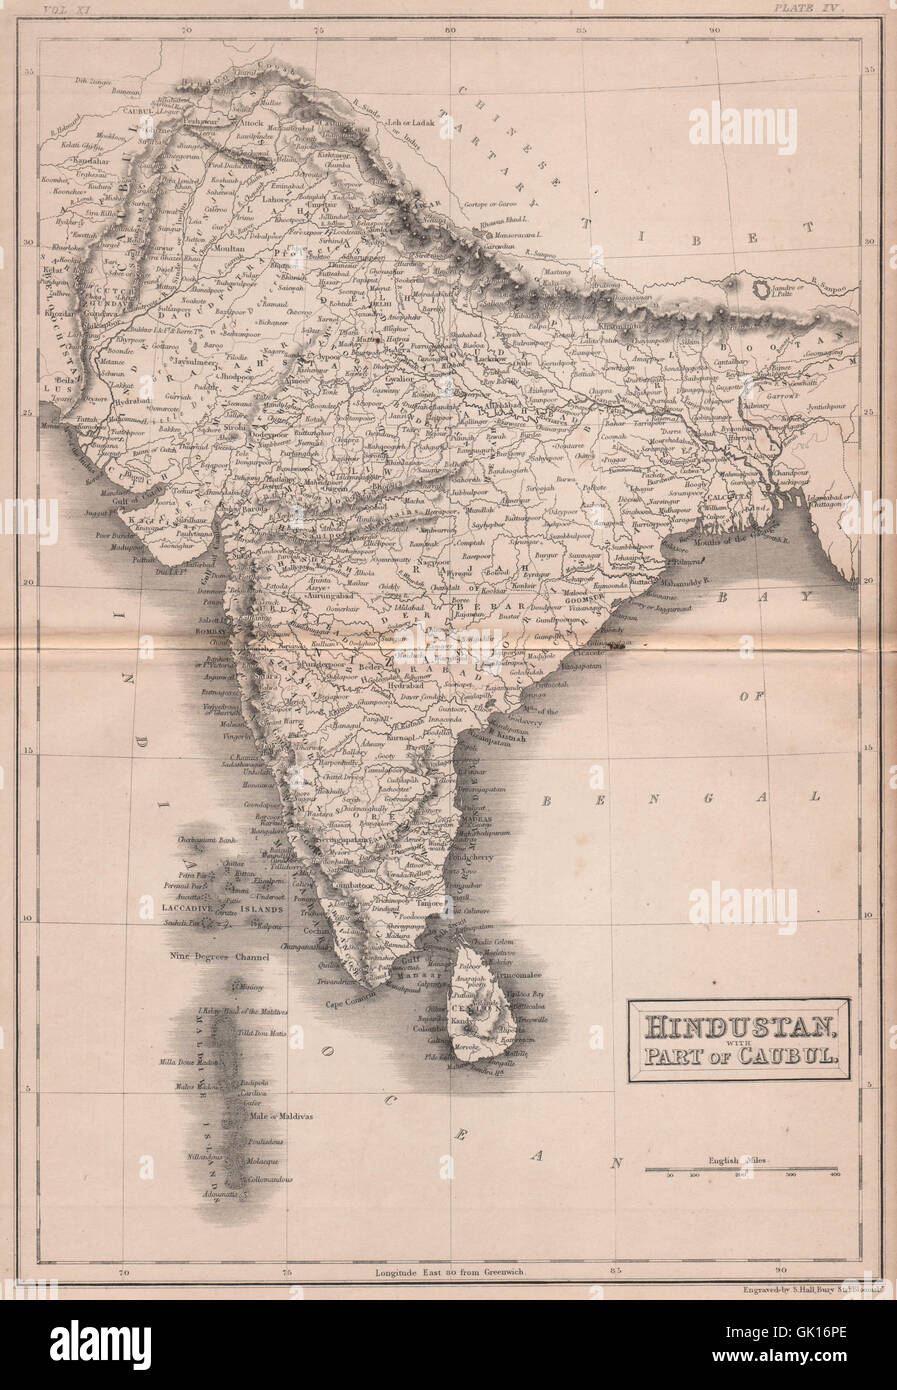 Hindustan, with part of Caubul. India Maldives Kabul. BRITANNICA, 1860 old map - Stock Image